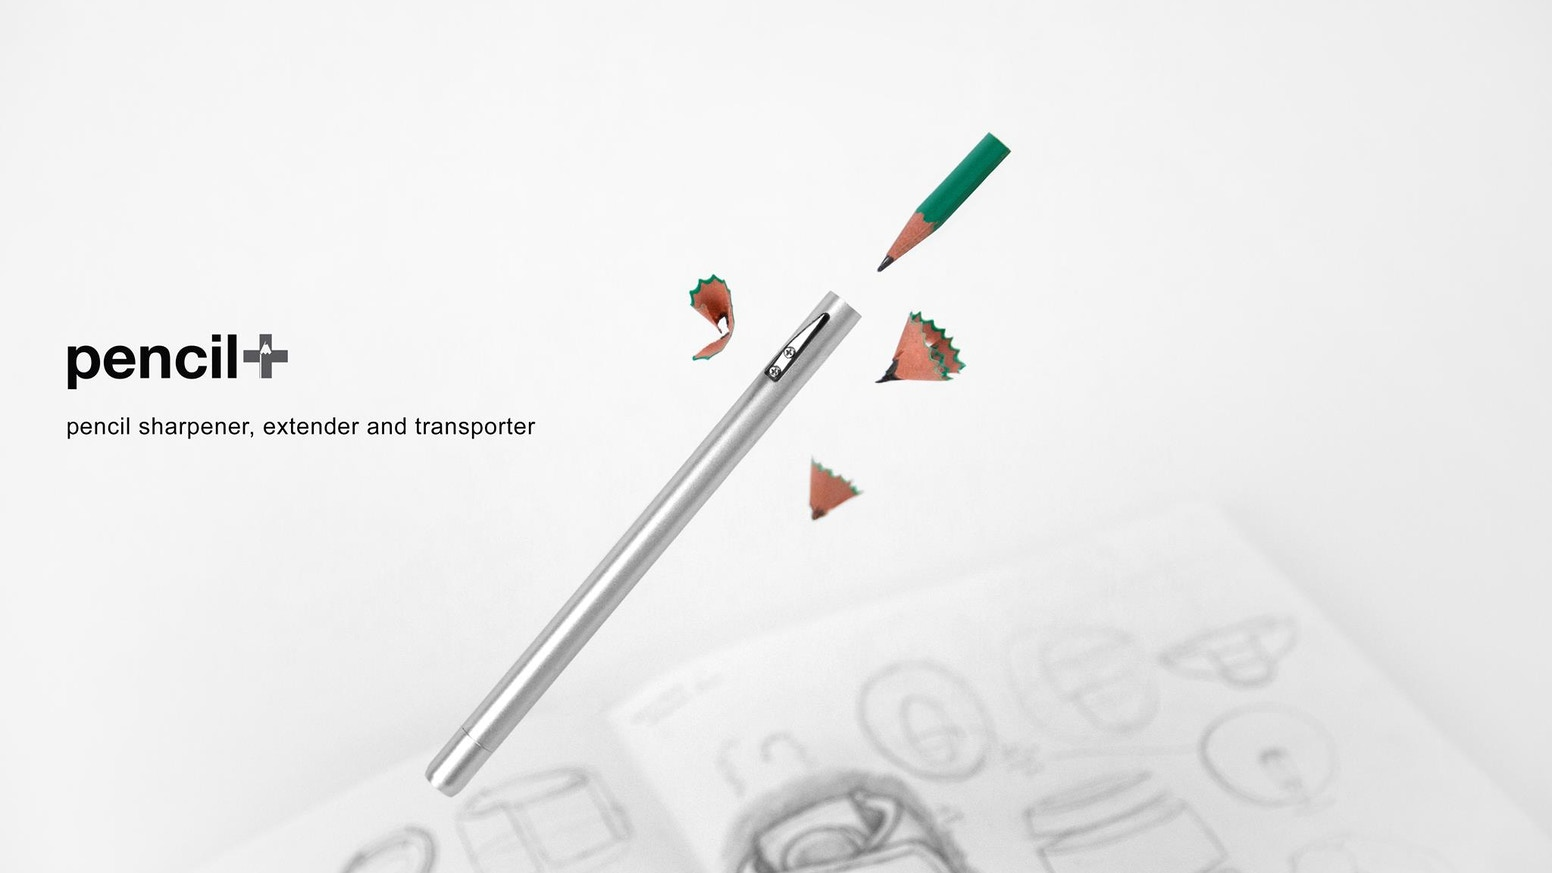 The pencil+ is designed to solve the problems of wooden pencils. No matter how short pencils get, or how often pencils break.